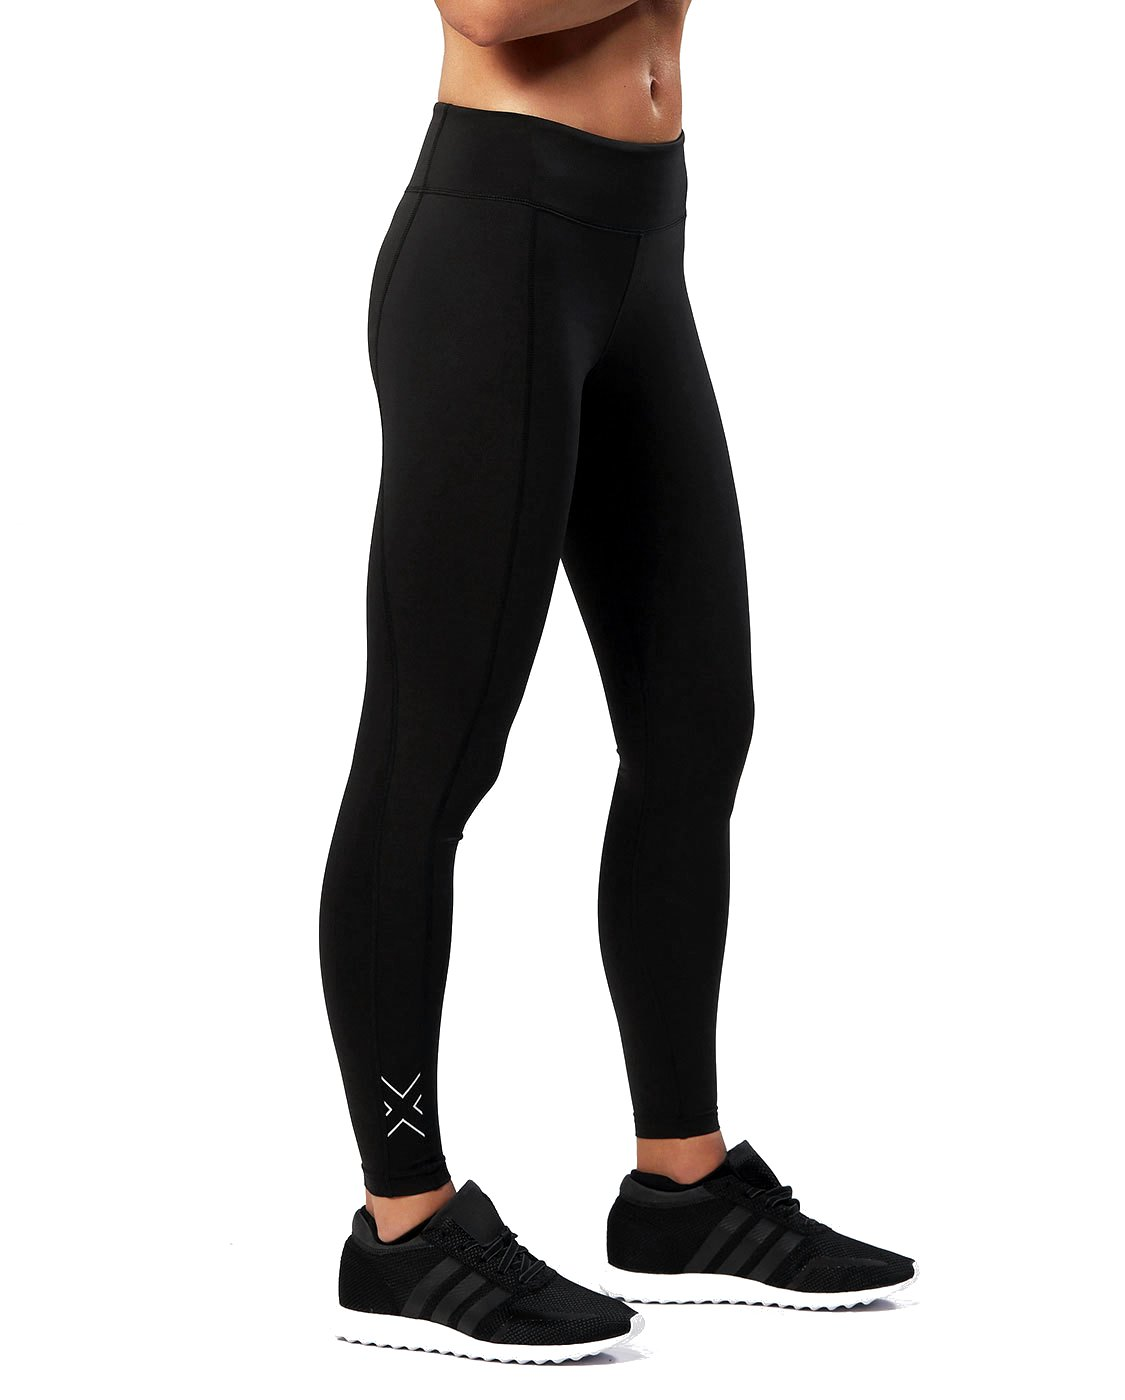 2XU Women's Active Compression Tights, Black/Silver, Large by 2XU (Image #1)